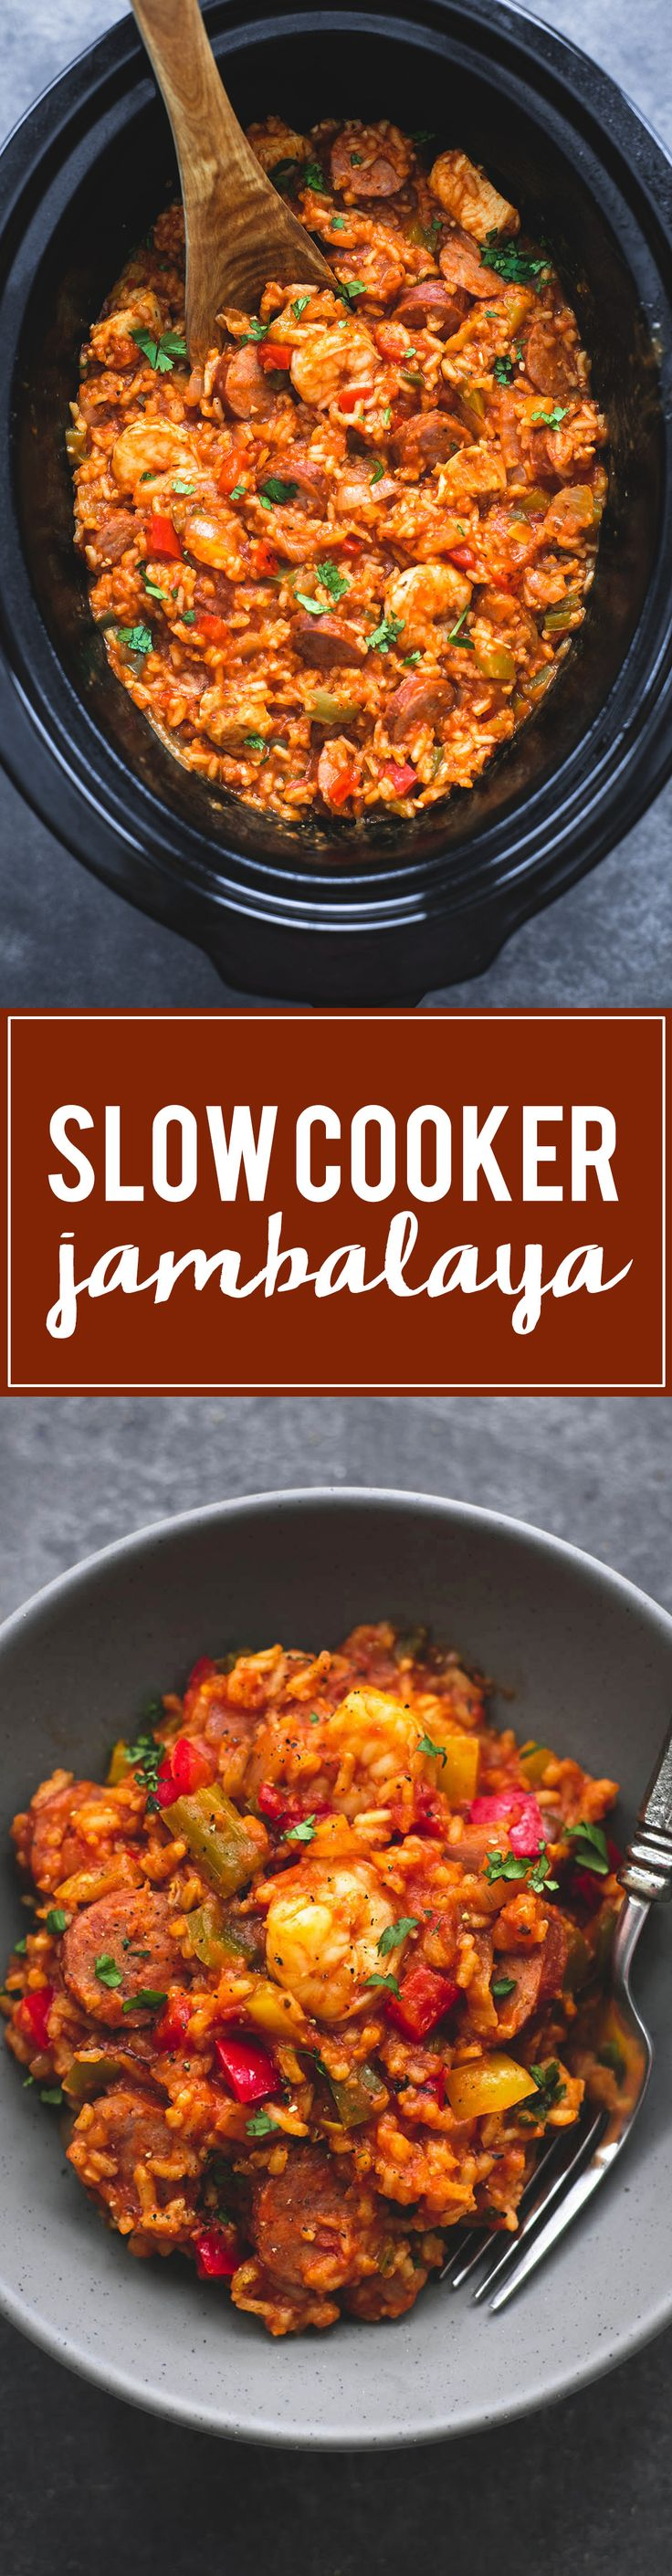 Easy and flavorful Slow Cooker Jambalaya | lecremedelacrumb.com